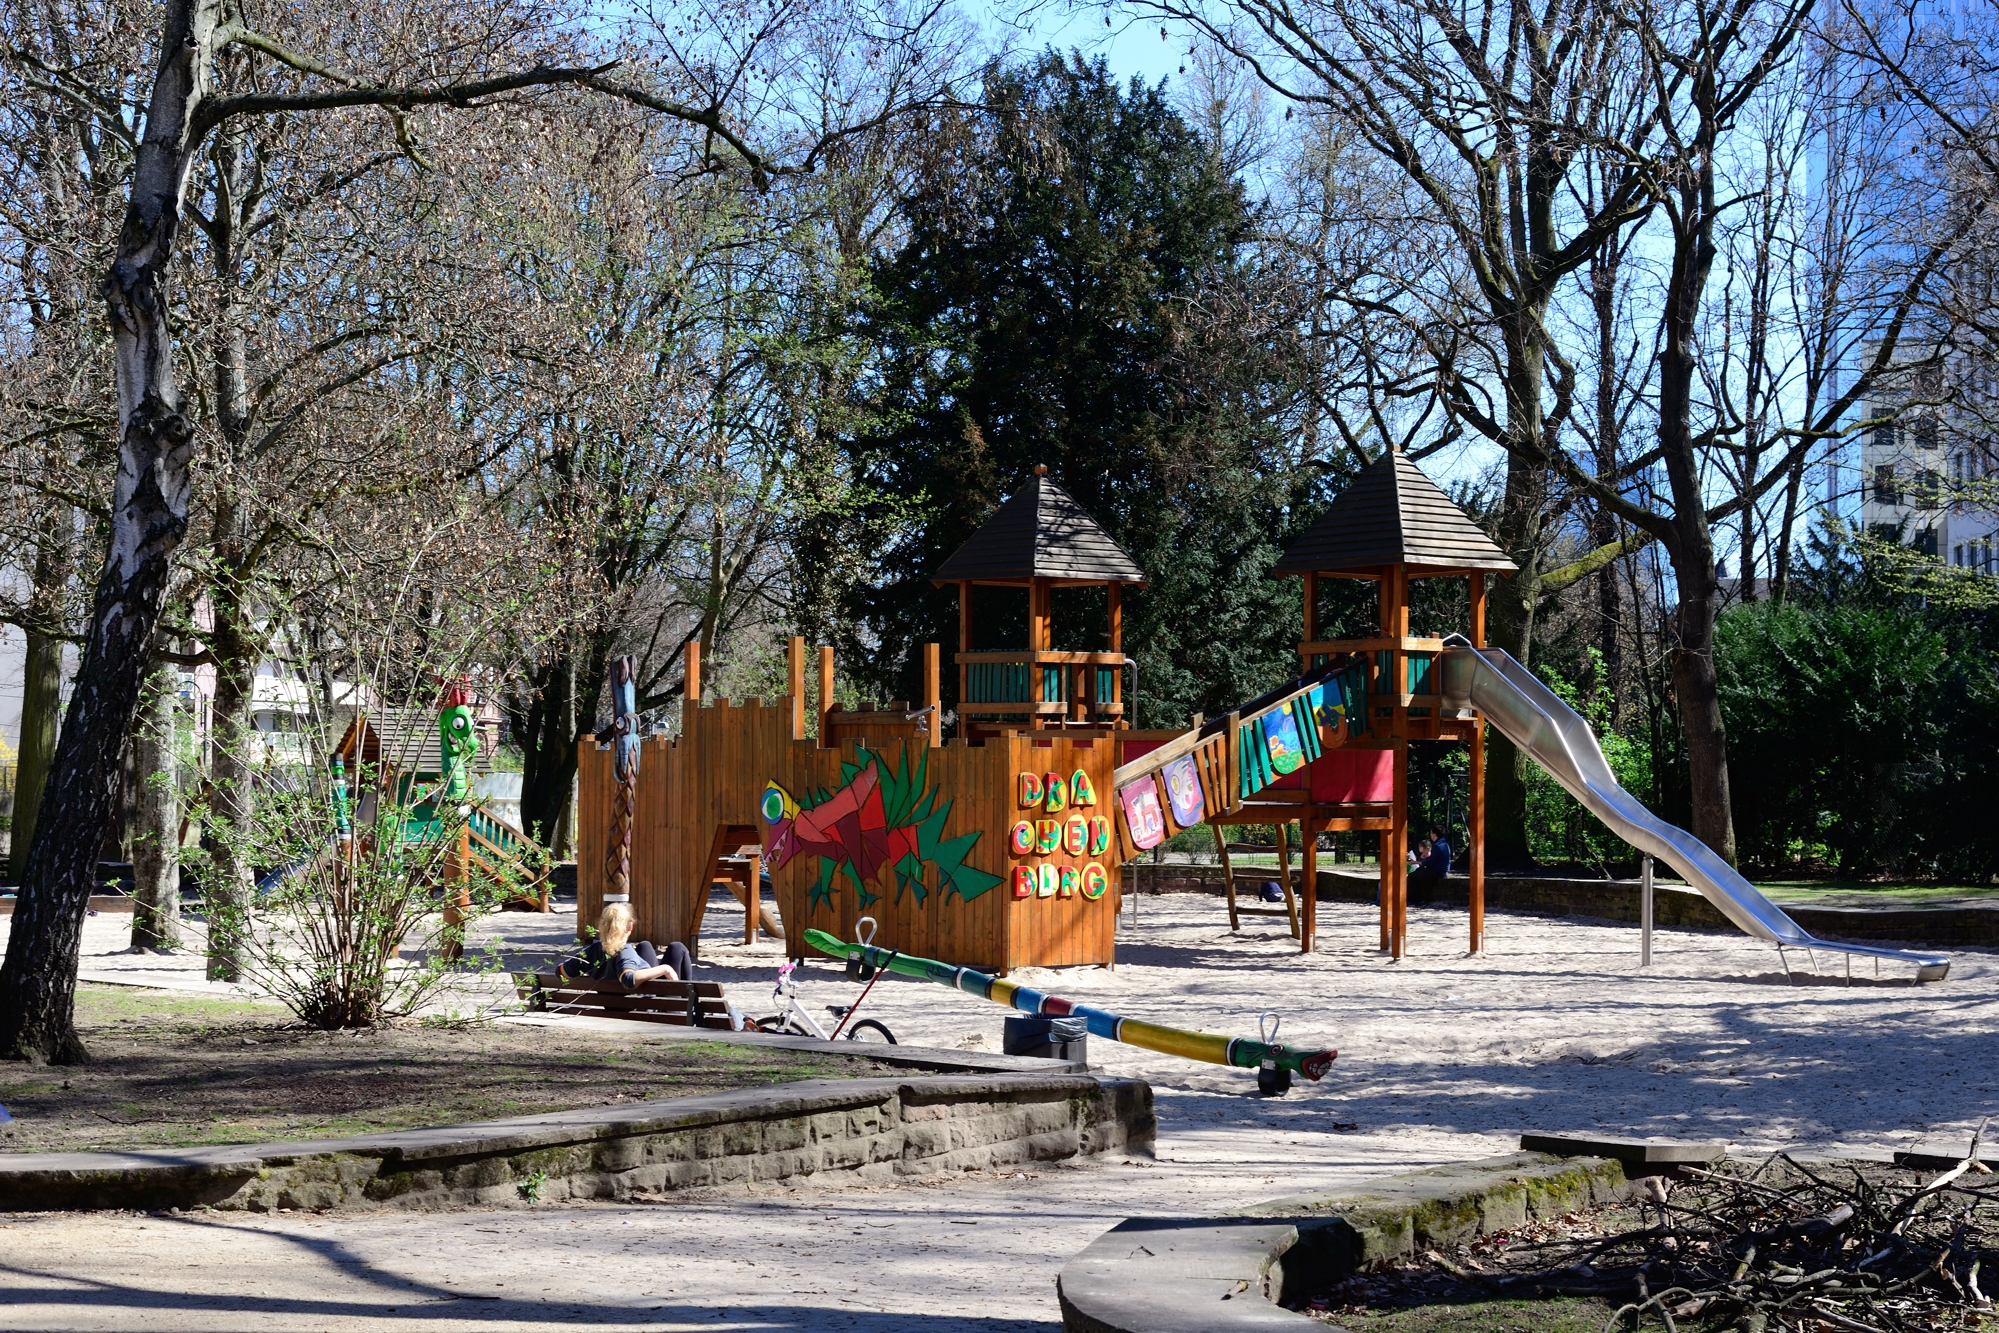 One of the many playgrounds in the park